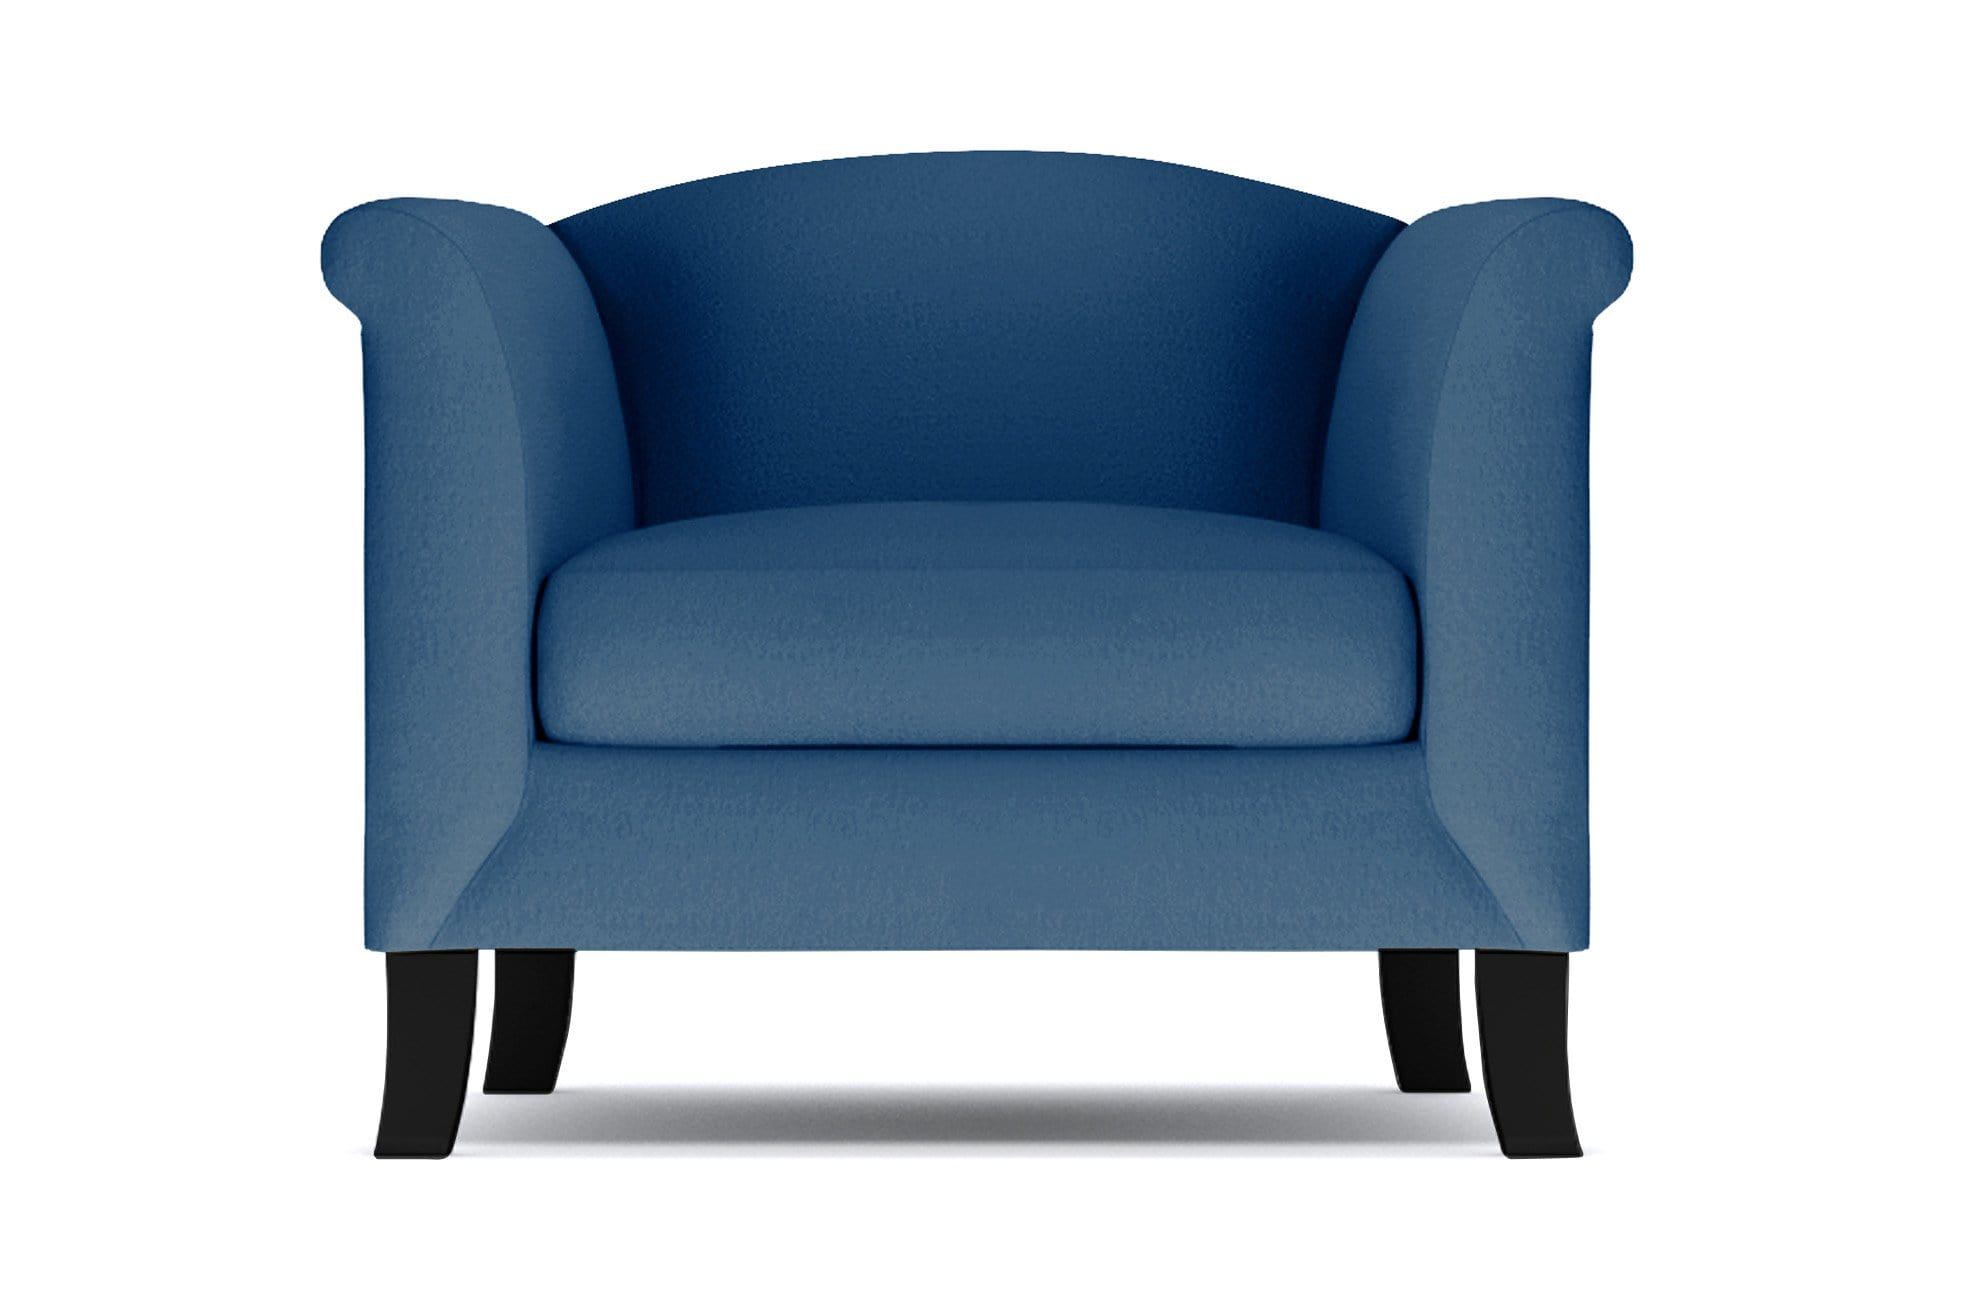 Albright_Chair__Blue___Accent_Chair__Furniture_sold_by_Apt2B